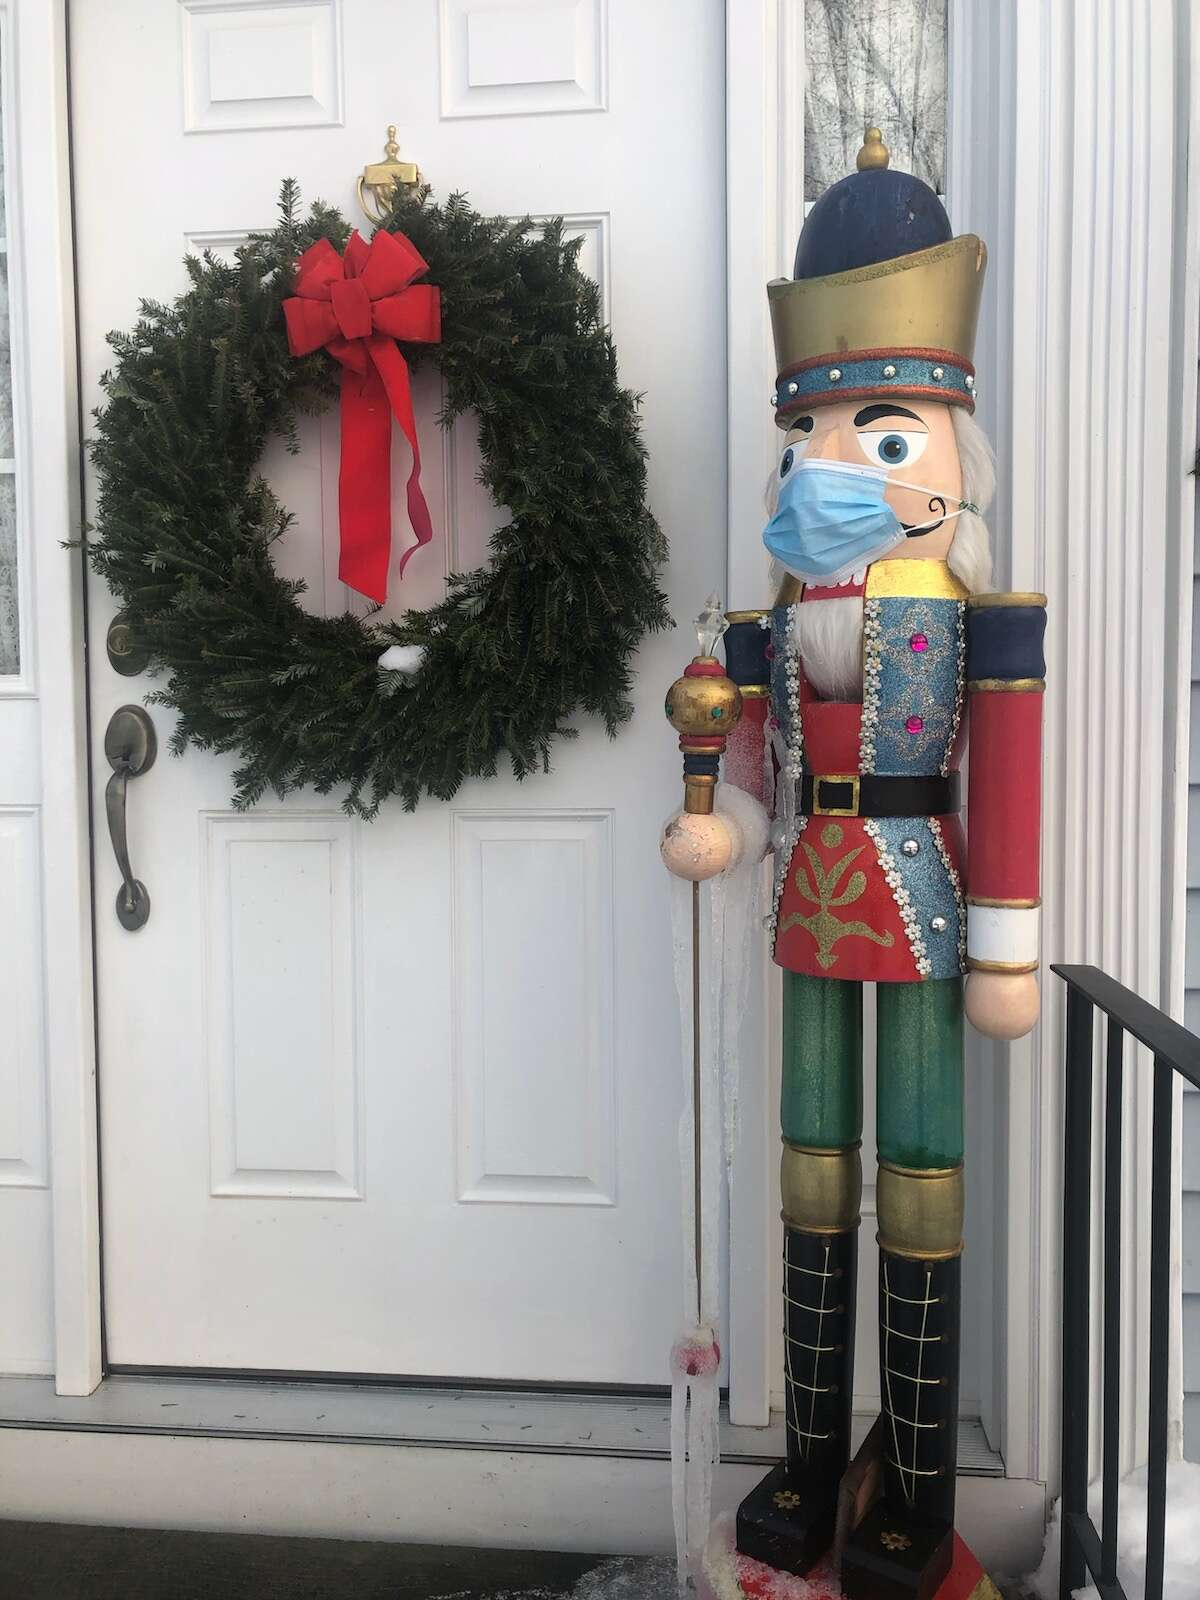 Christmas 2020When my daughter was young she danced the nutcracker ballet every year at the Egg in Albany. Our house is full of nutcrackers and the big one always guards the door. I knew he would take precautions.